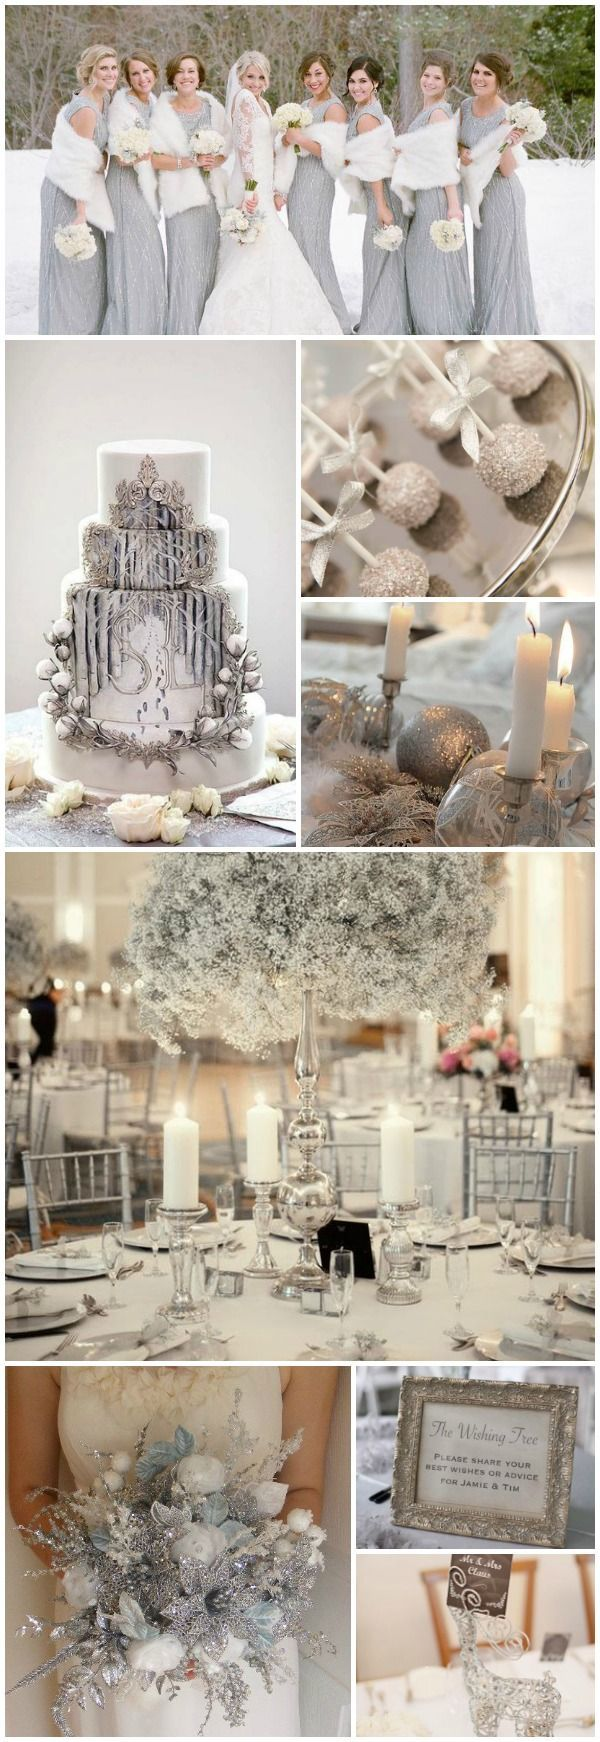 Top 6 Incredible Winter Wonderland Wedding Decorations Ideas